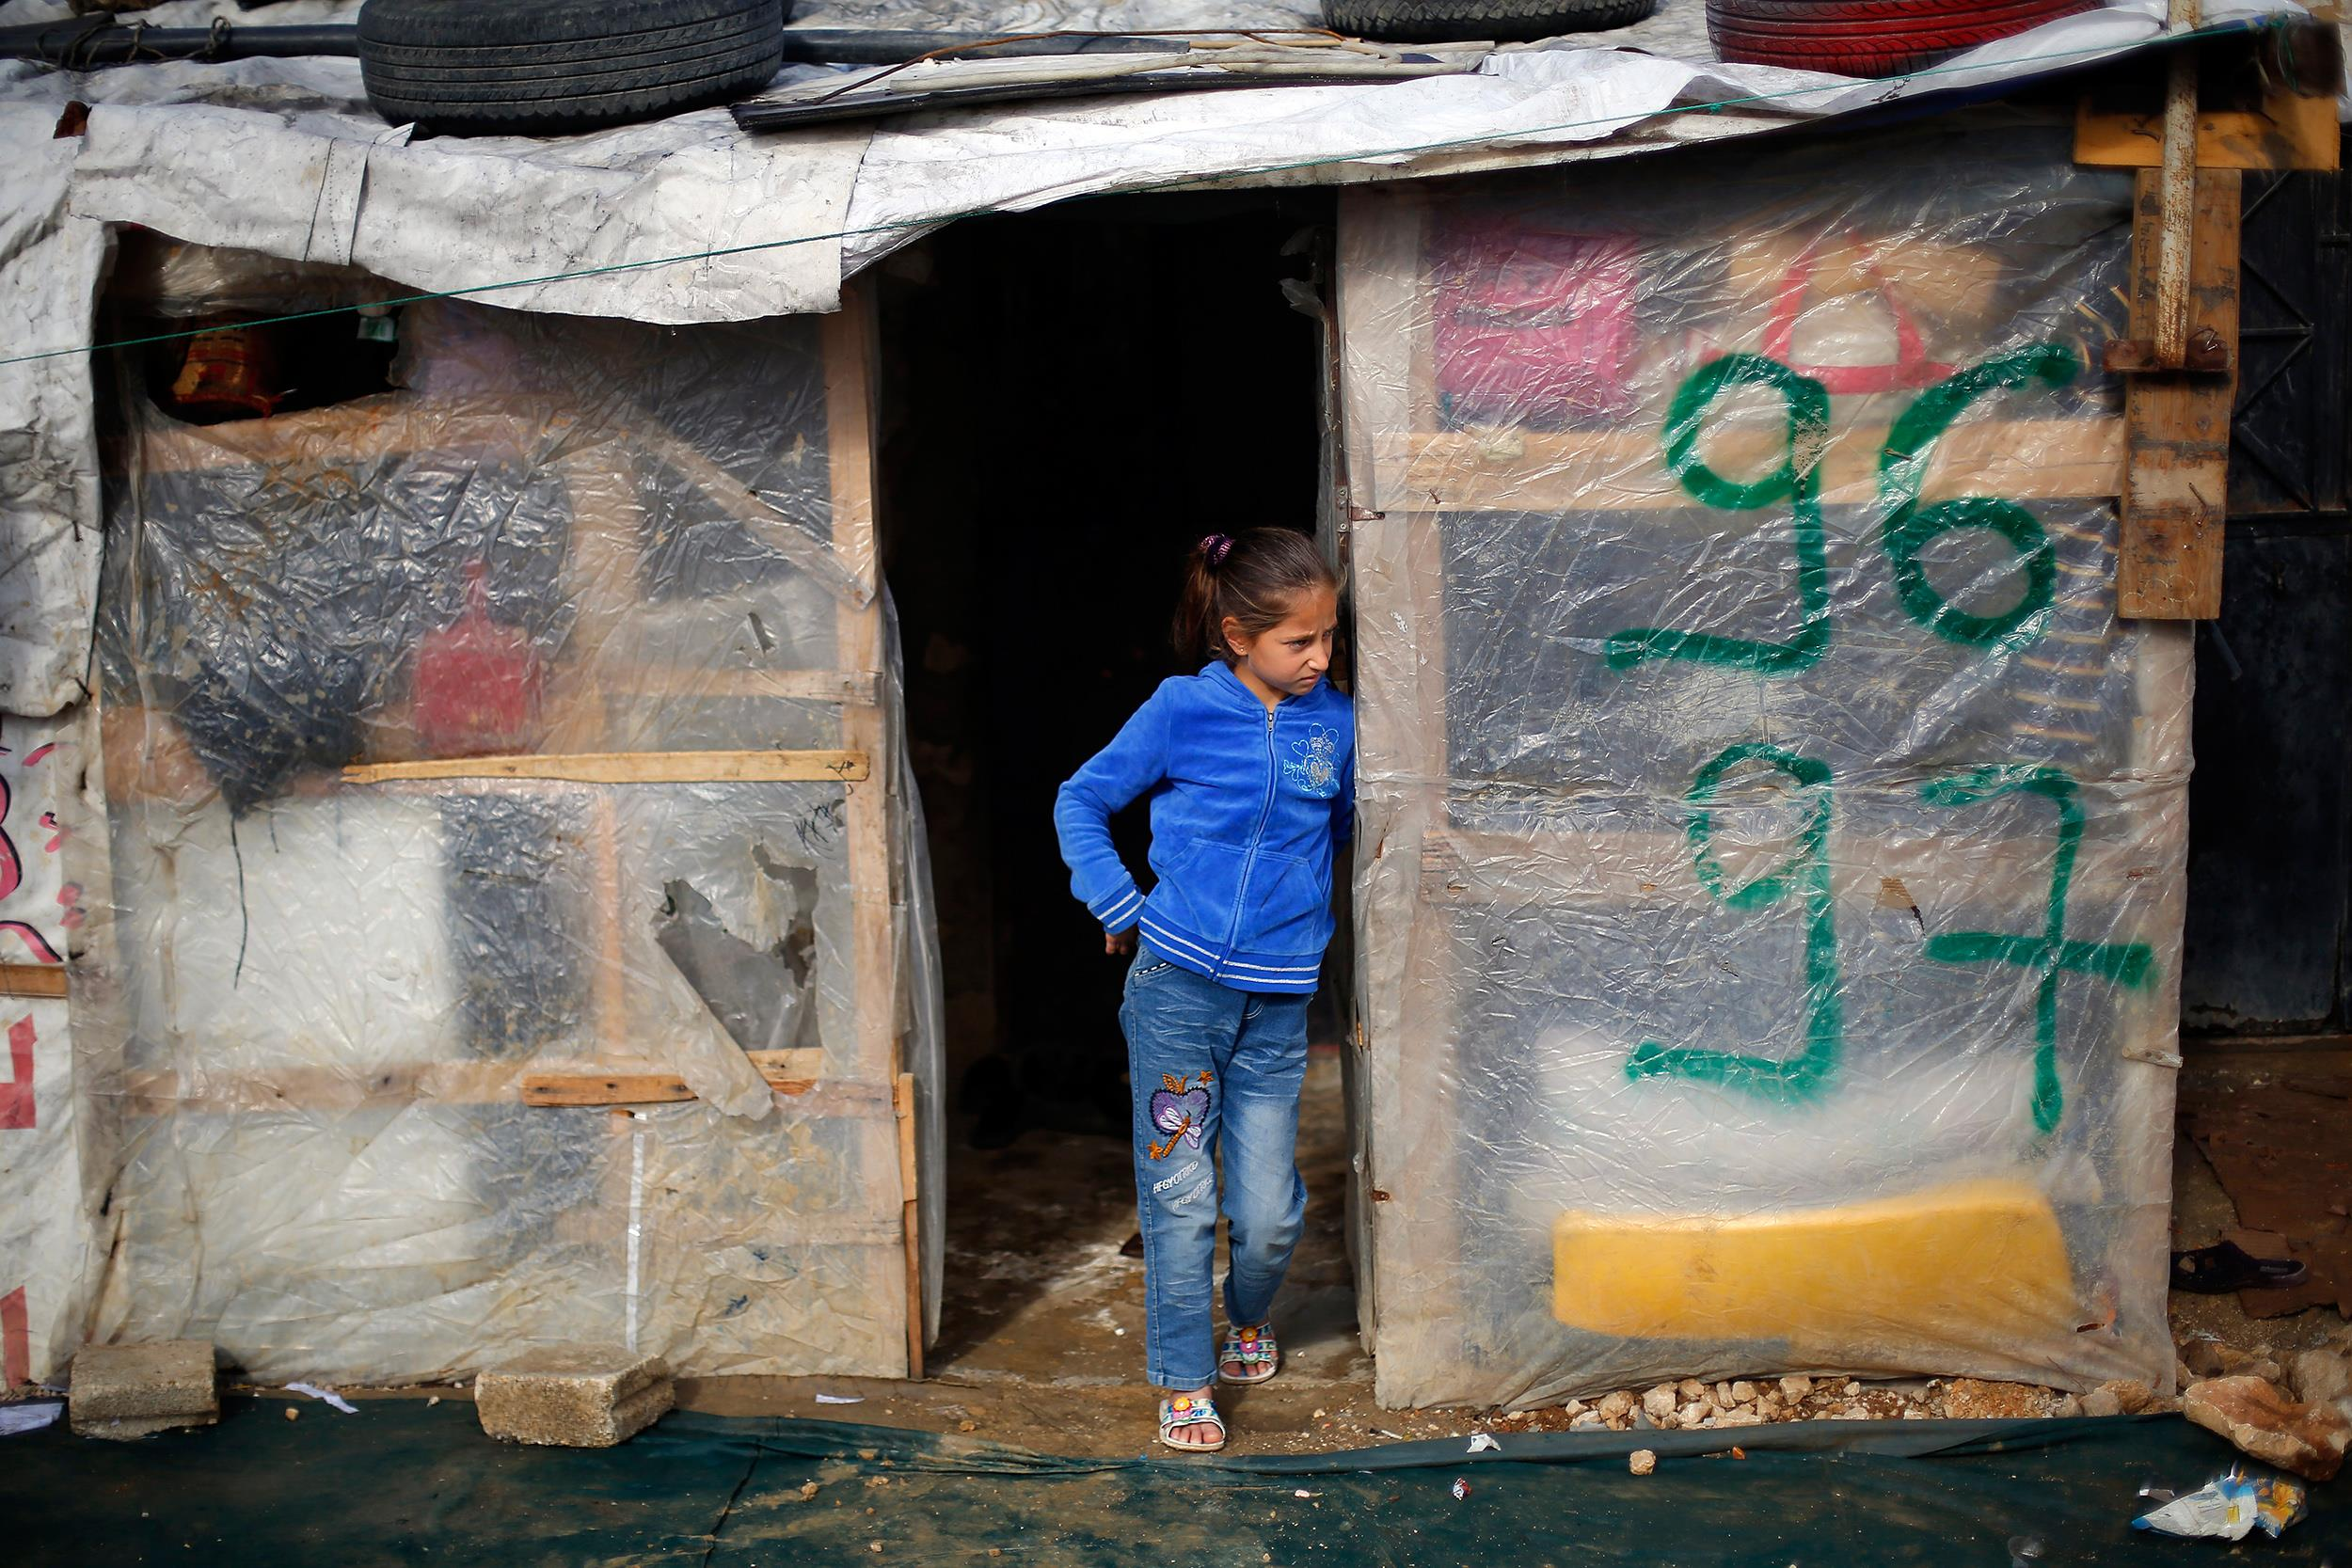 Image:A Syrian refugee child stands outside her shack in the Fayda Camp, some 25 miles east of Beirut